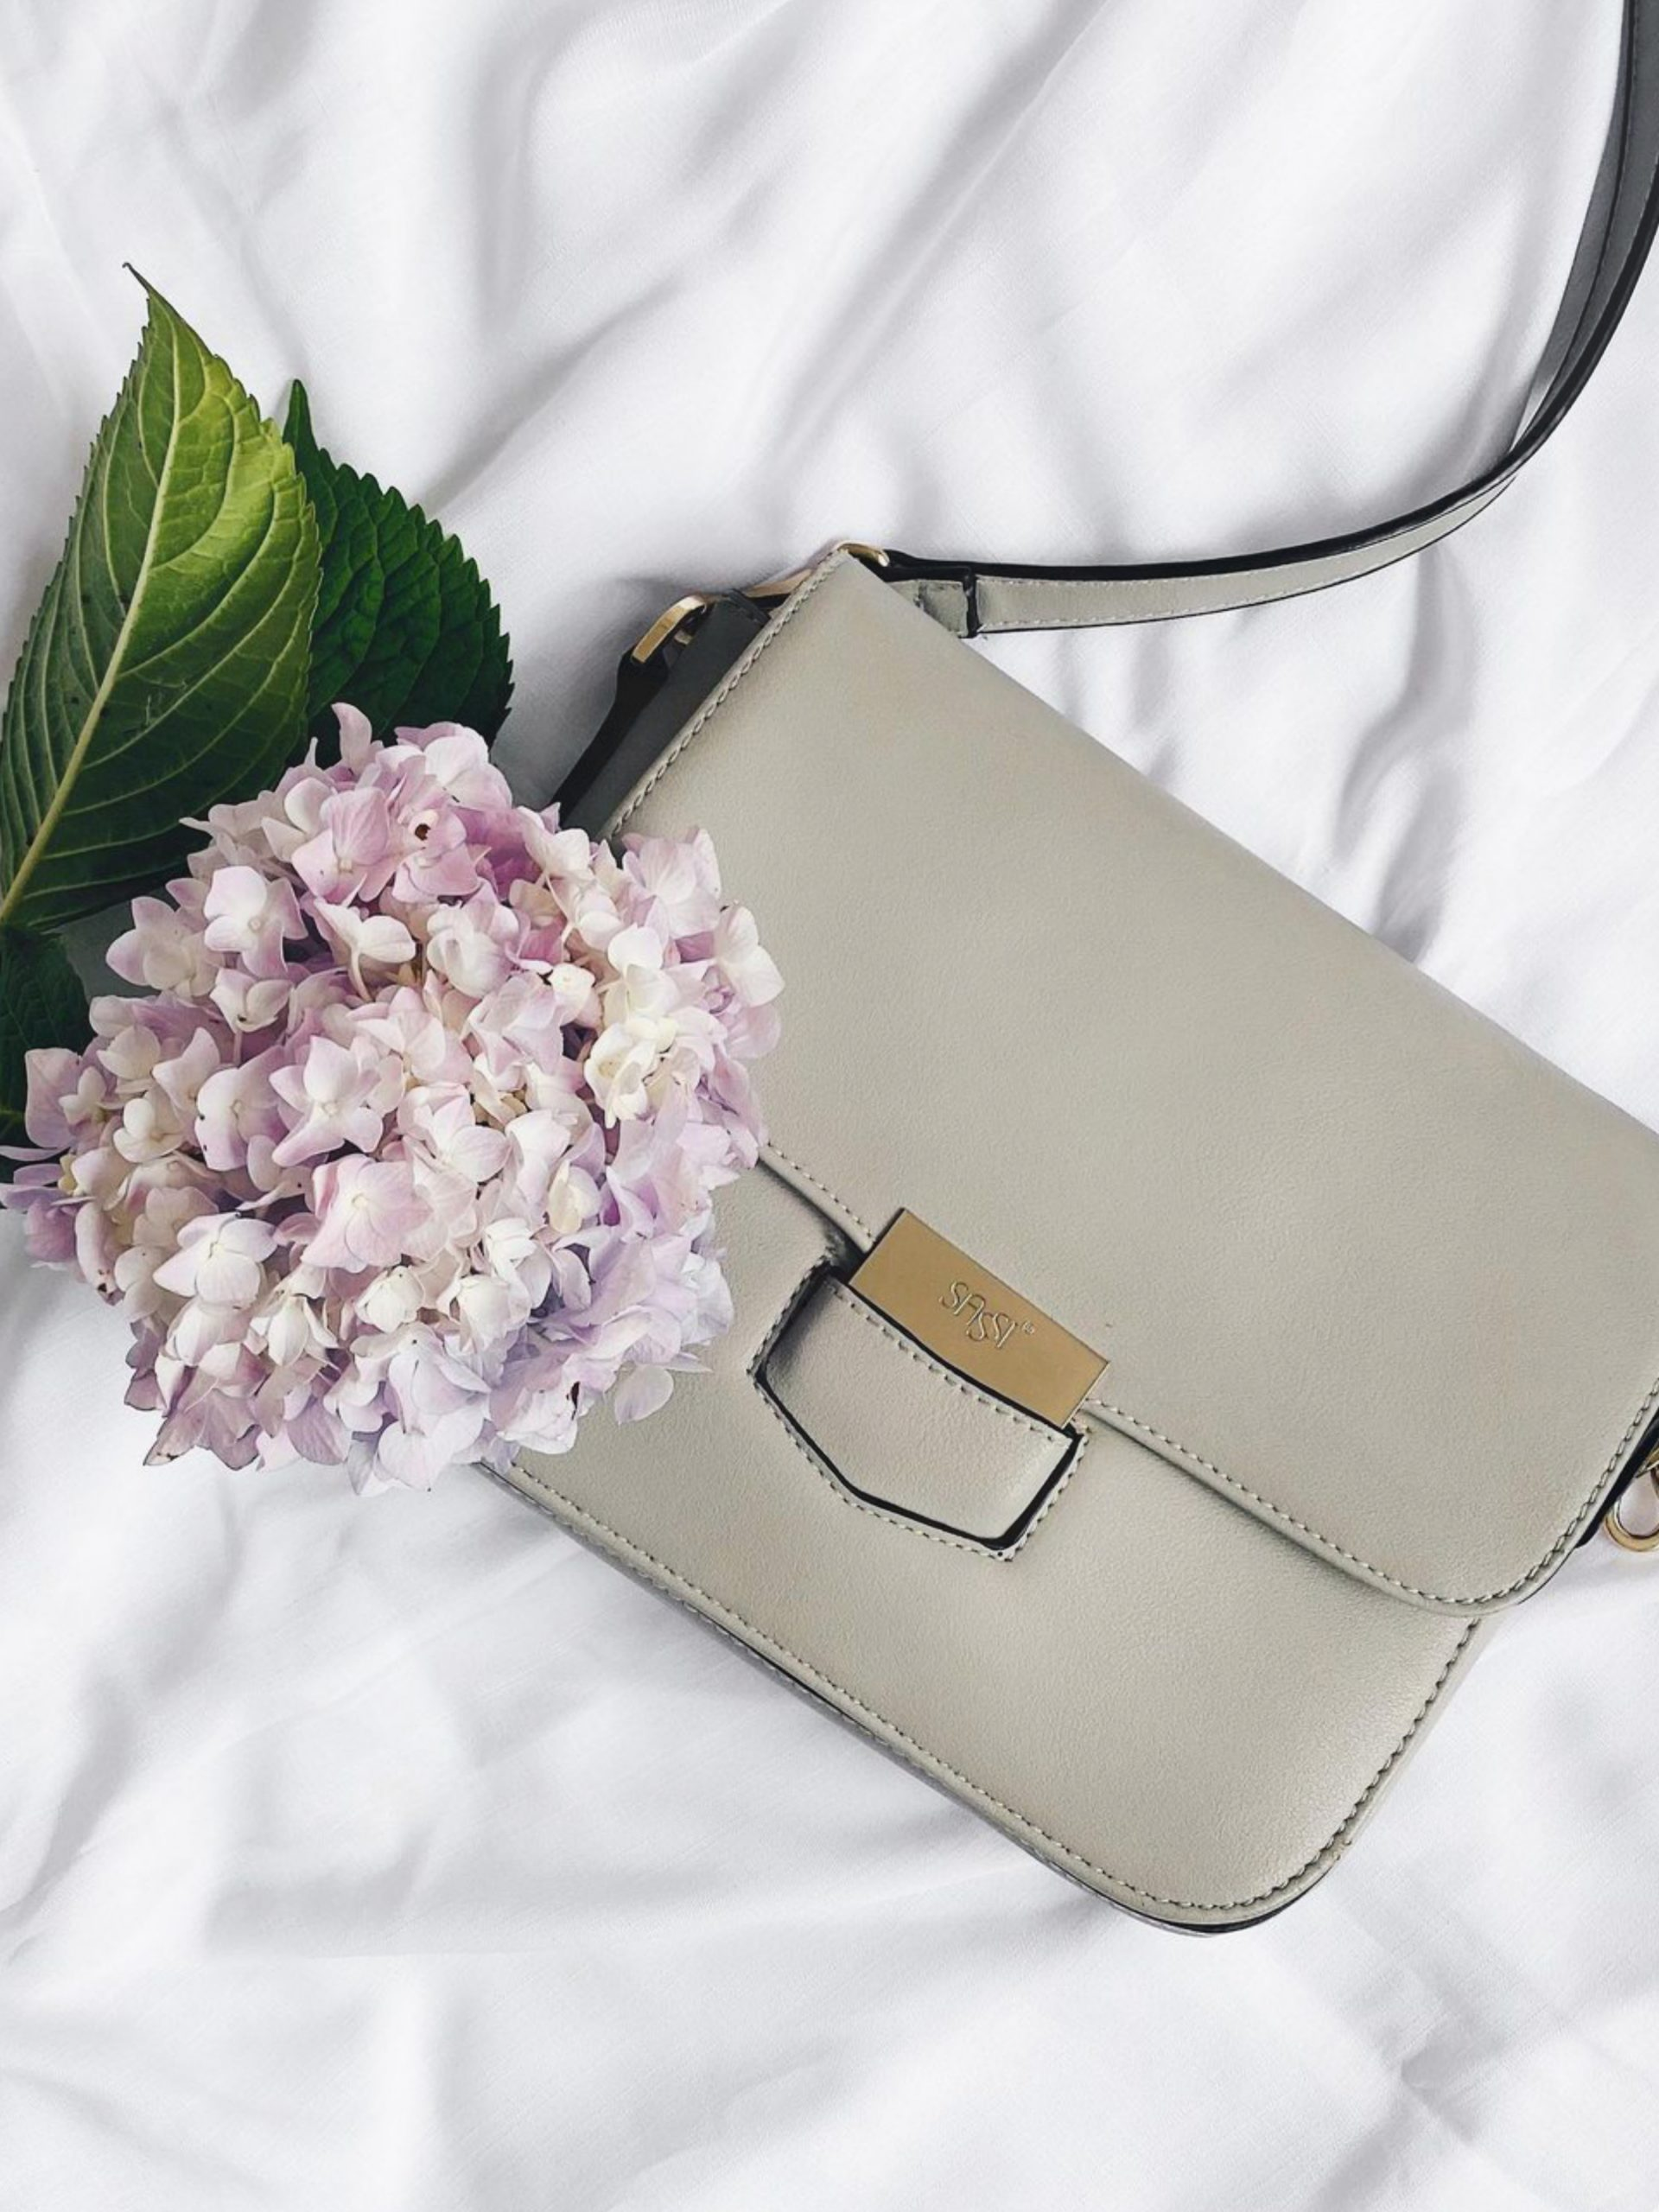 A lady purse and flowers